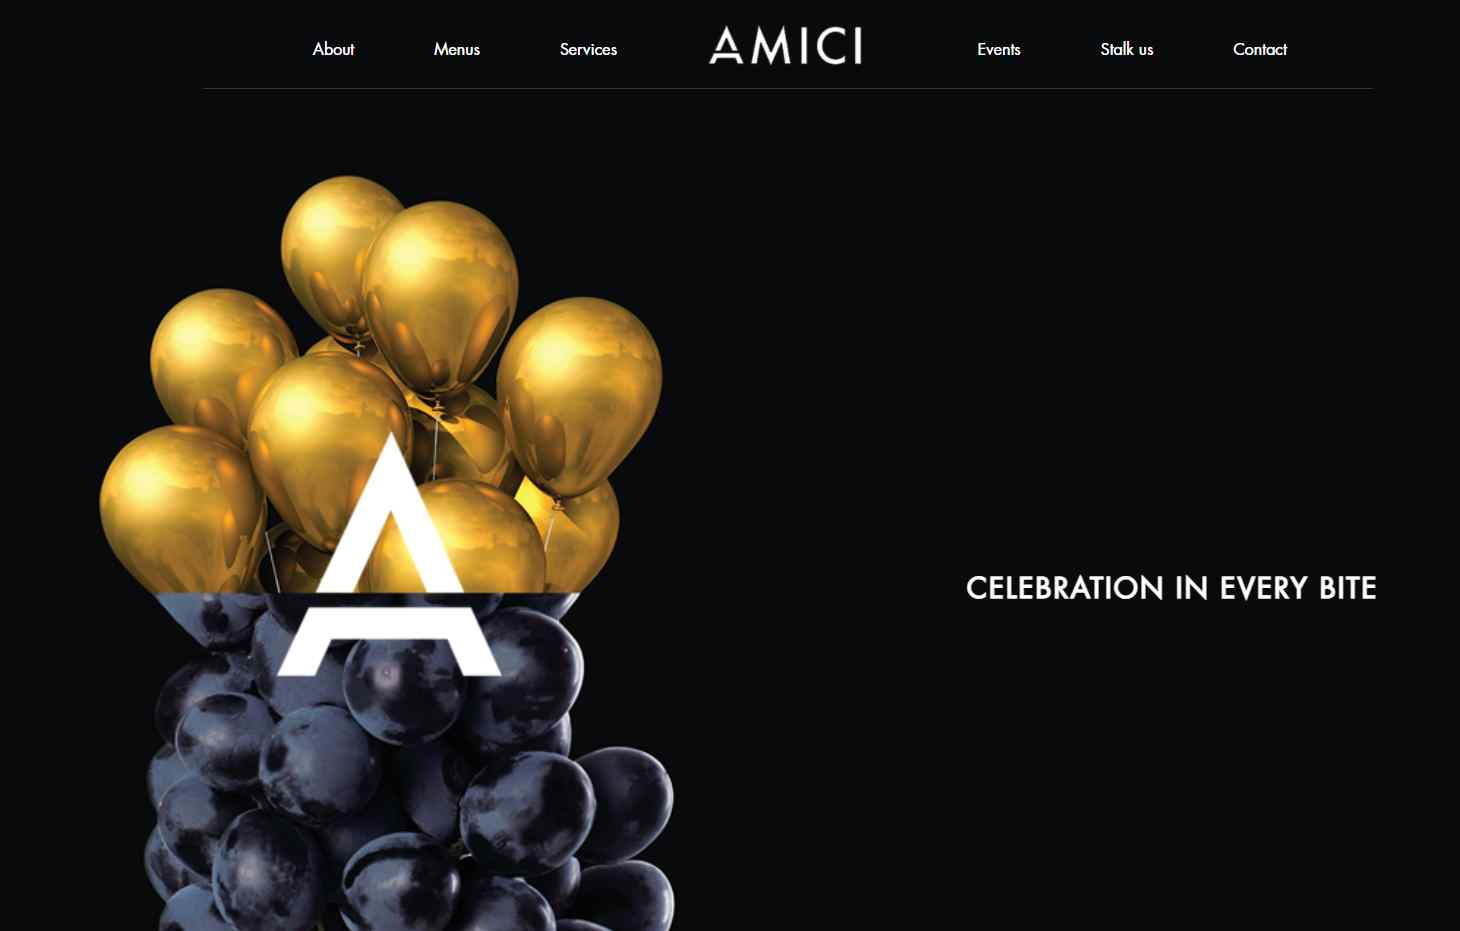 amici Top Wedding Caterers in Singapore